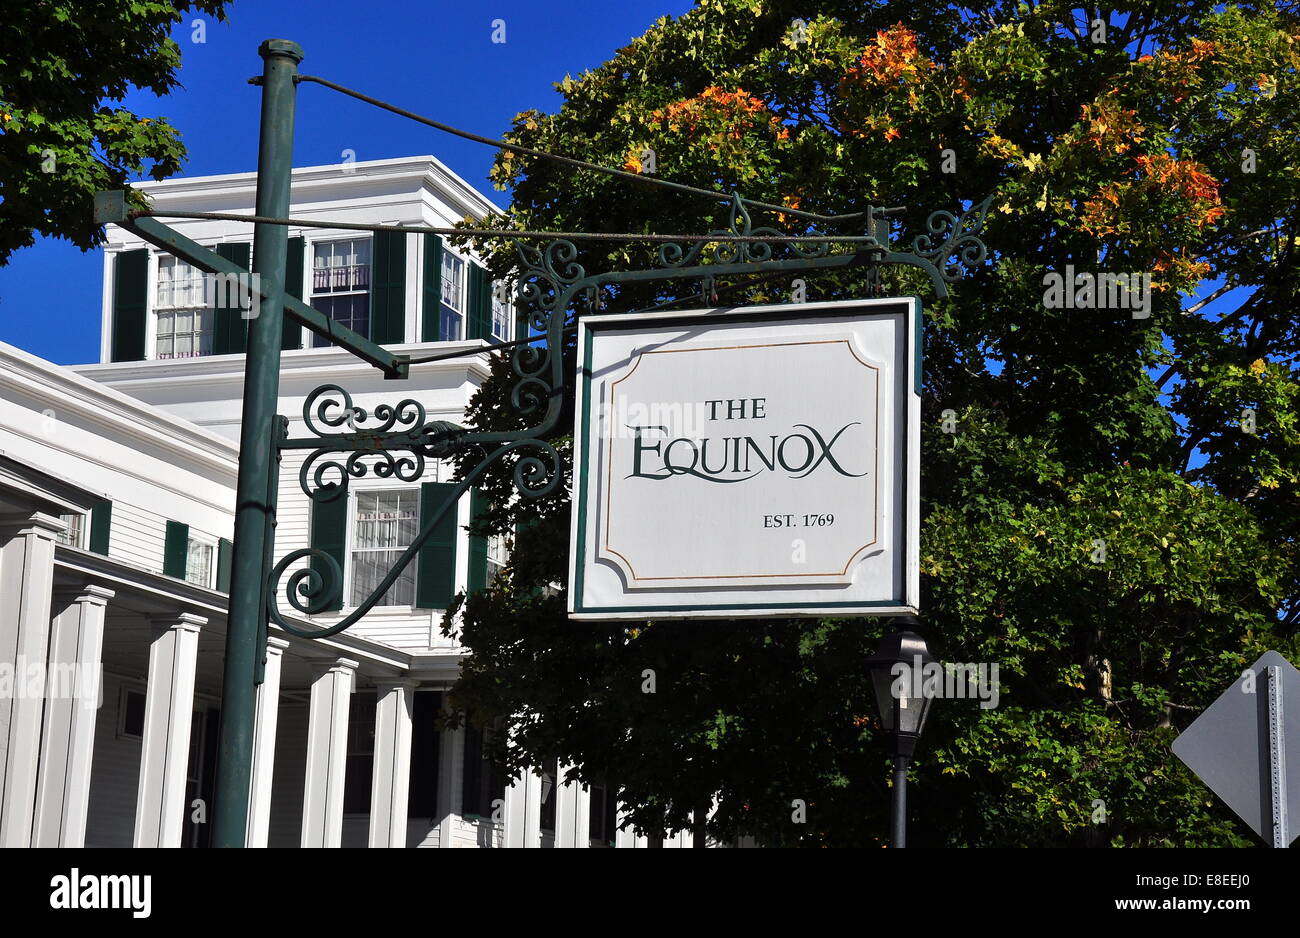 equinox main hotel deluxe. Manchester Village, Vermont: The Greek Revival Luxury Equinox Hotel And  Resort Is A Village Equinox Main Hotel Deluxe